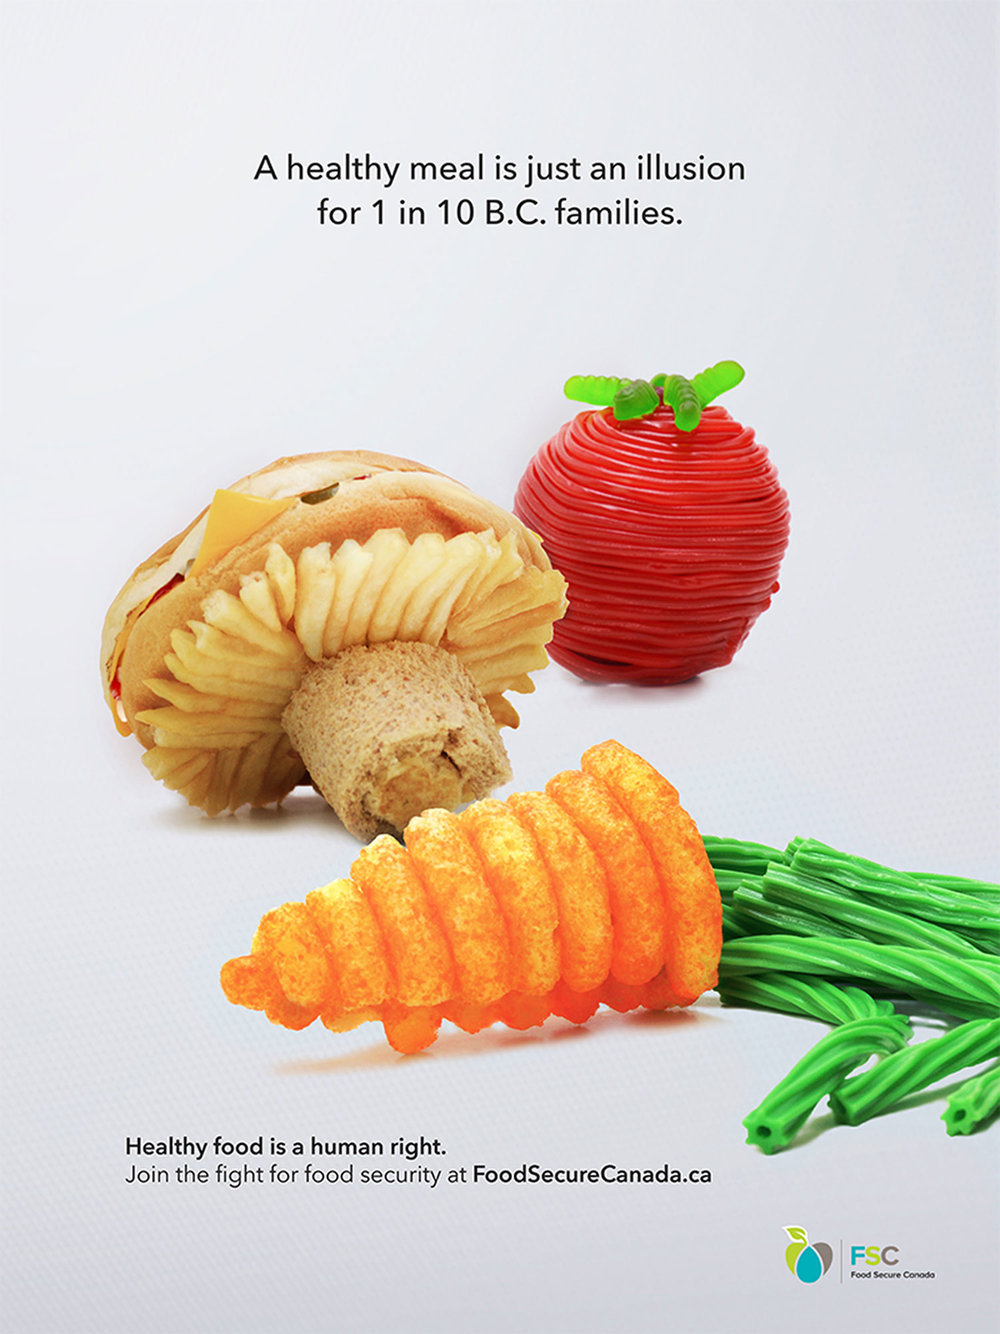 """For her world hunger campaign, Shay decided that she wanted to research what hunger looked like at home in Canada, and specifically British Columbia. In her research, she found that 1 in 10 B.C. families can't afford healthy food on a regular basis, and that this is called """"food insecurity"""". Her print ad aims to bring awareness to this issue by showing the audience that for someone going through food insecurity, healthy food is elusive.  """"The idea came to me pretty fast,"""" says Shay. It was one of her top five first ideas and she knew it was a good one. The process of constructing the food and photographing it took one afternoon! """"Overall, it was a super quick ideation and production of everything!"""" she says."""